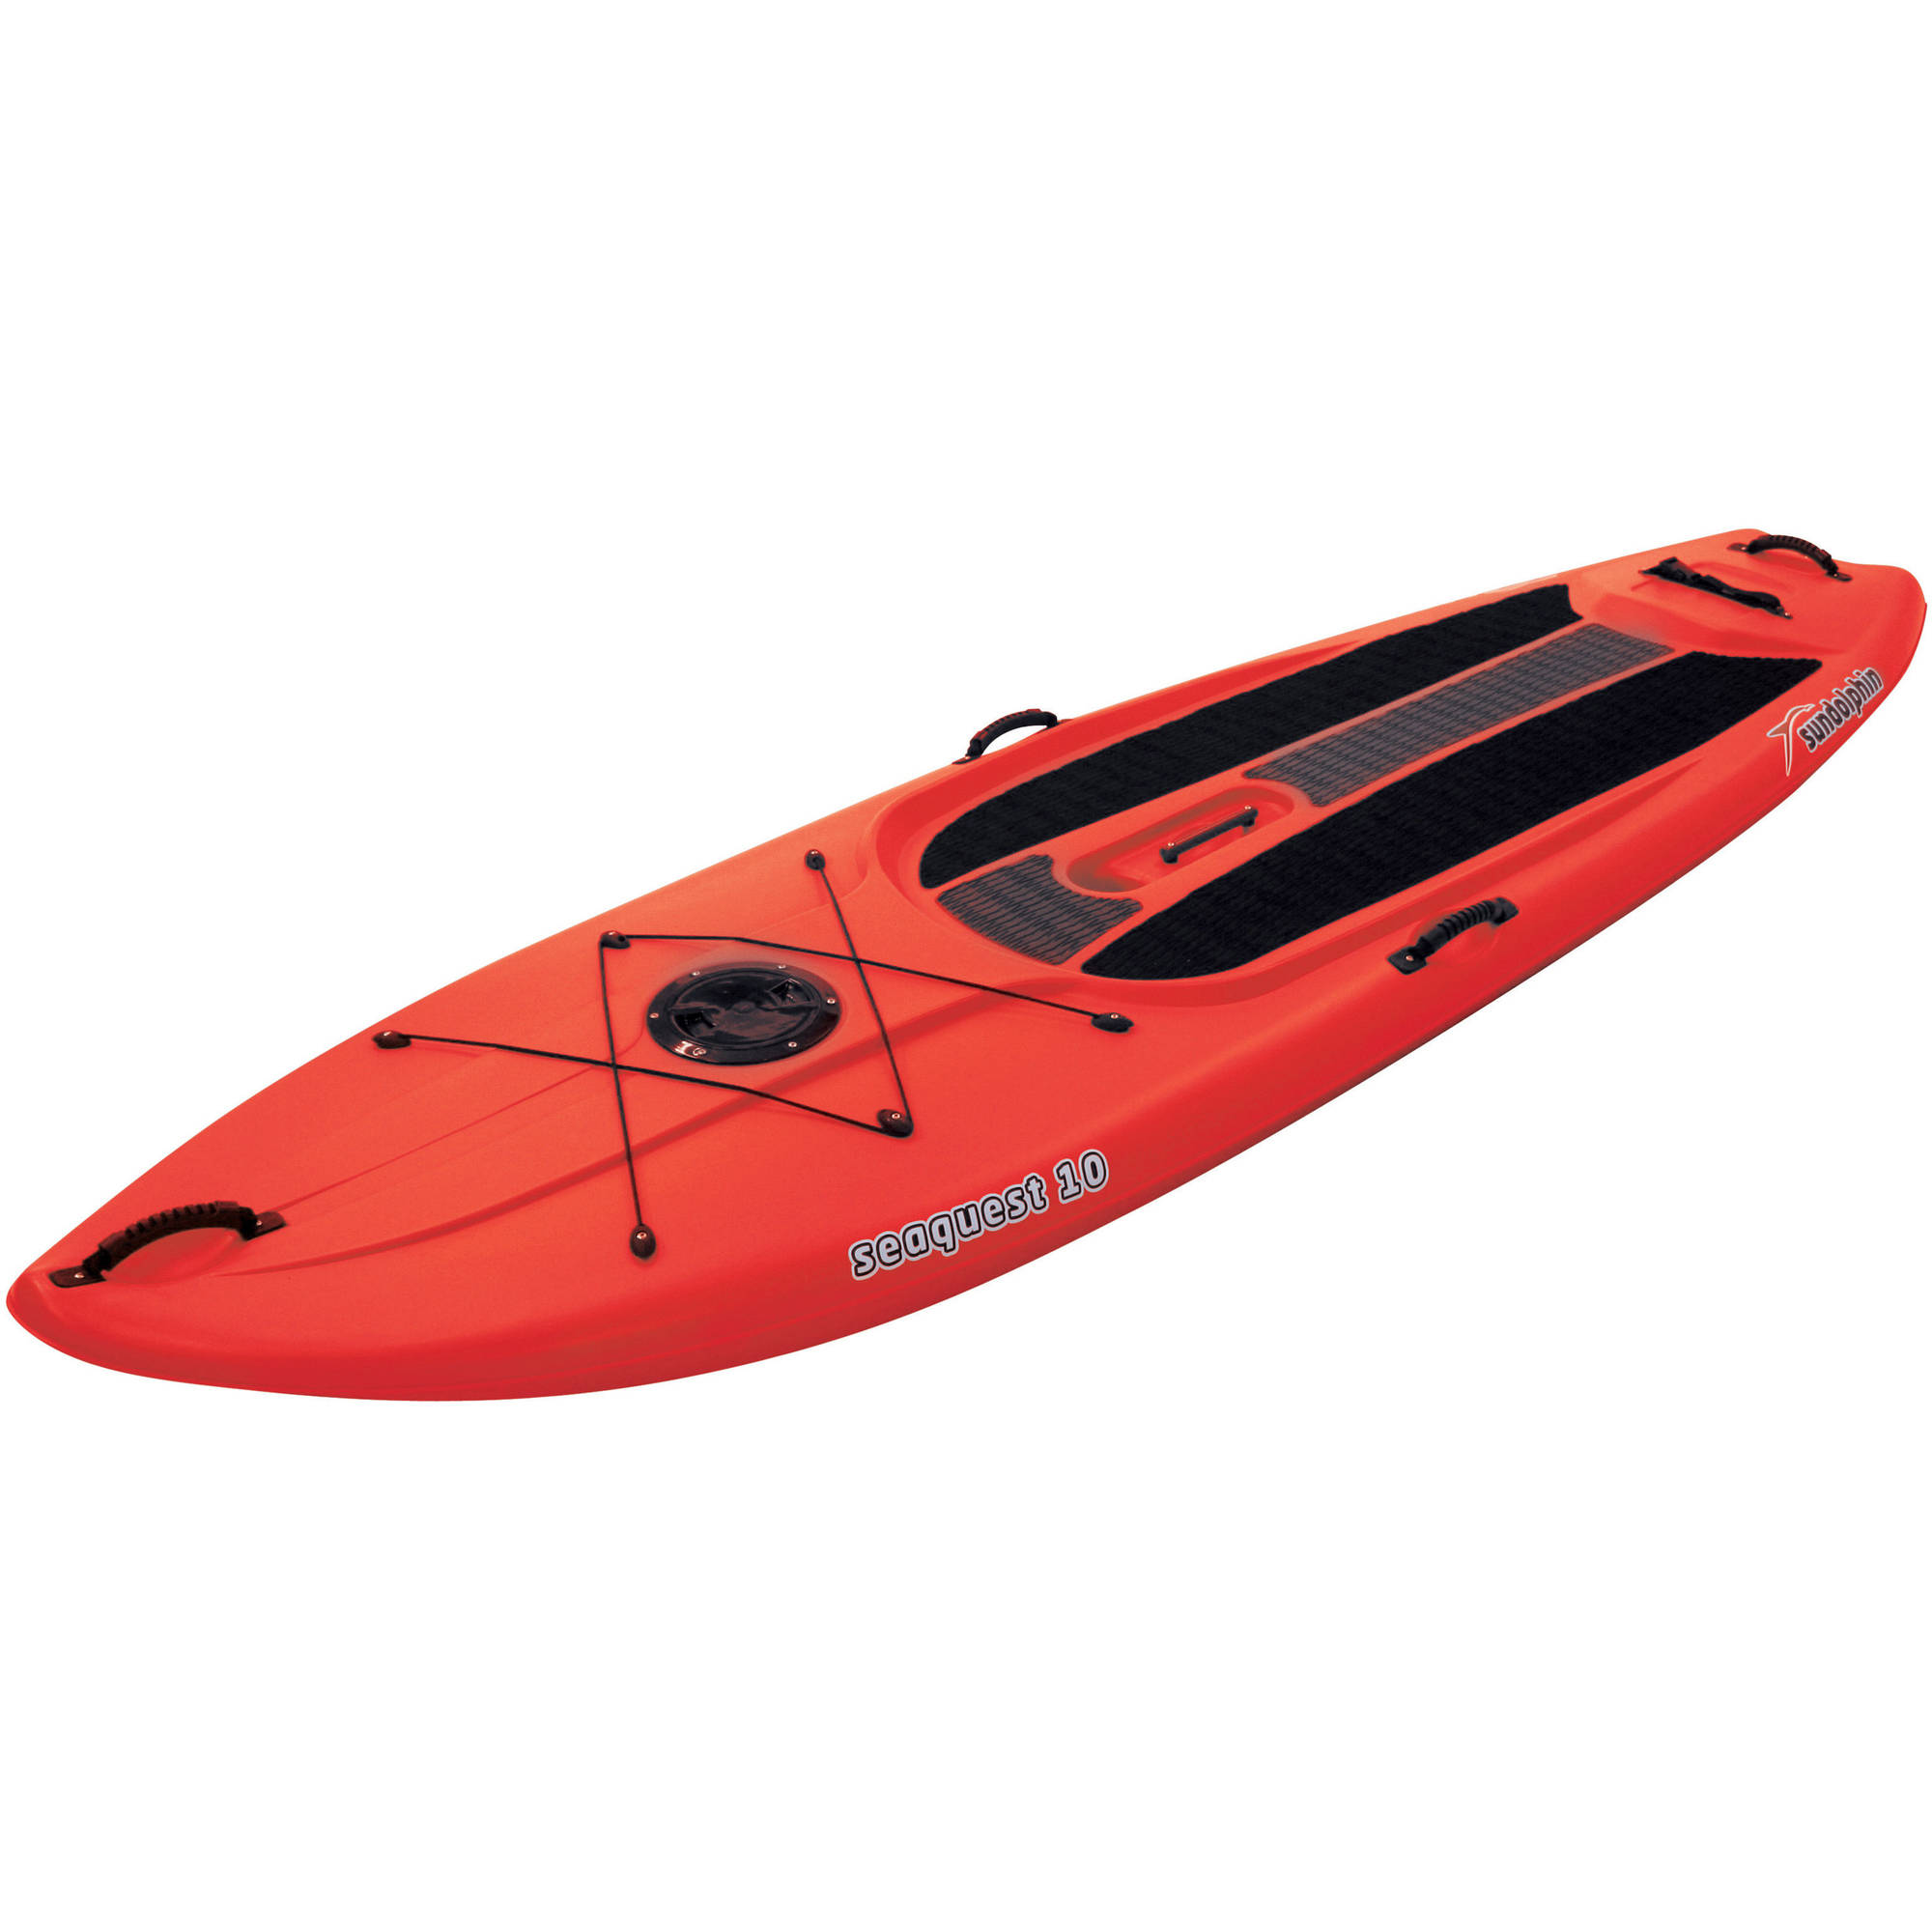 Sun Dolphin Seaquest 10' Stand-Up Paddleboard with Bonus Paddle by KL Industries